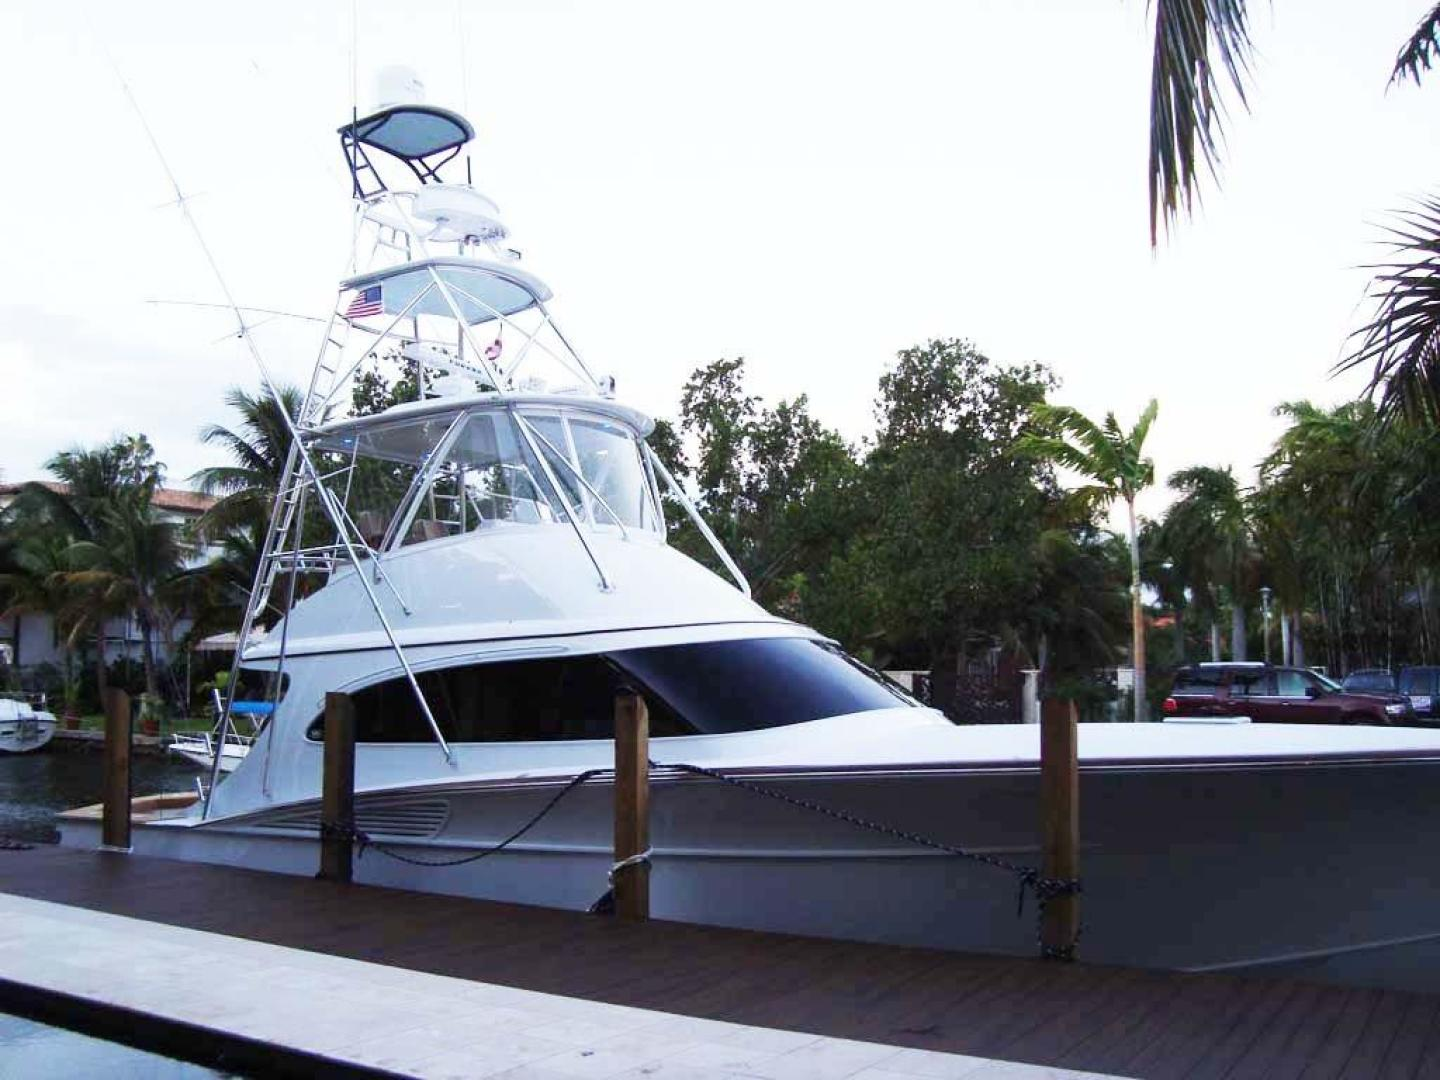 F&S-Convertible-2013-Triple-F-Coral-Gables-Florida-United-States-TRIPLE-F-at-the-Dock-1016972